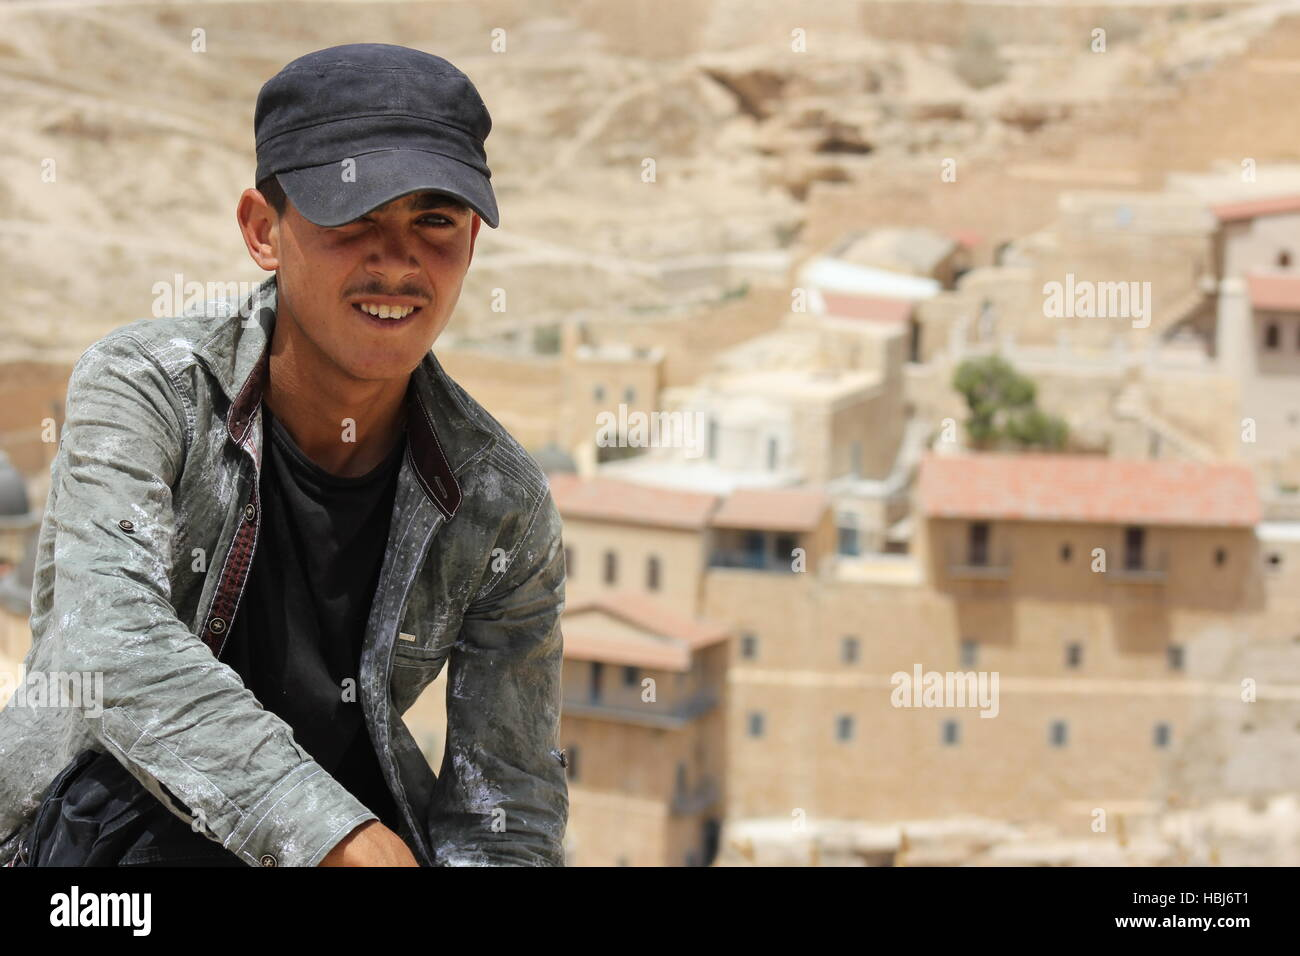 A young Bedouin boy near The Holy Lavra of Saint Sabbas the Sanctified, known in Arabic as Mar Saba, a Greek Orthodox Stock Photo